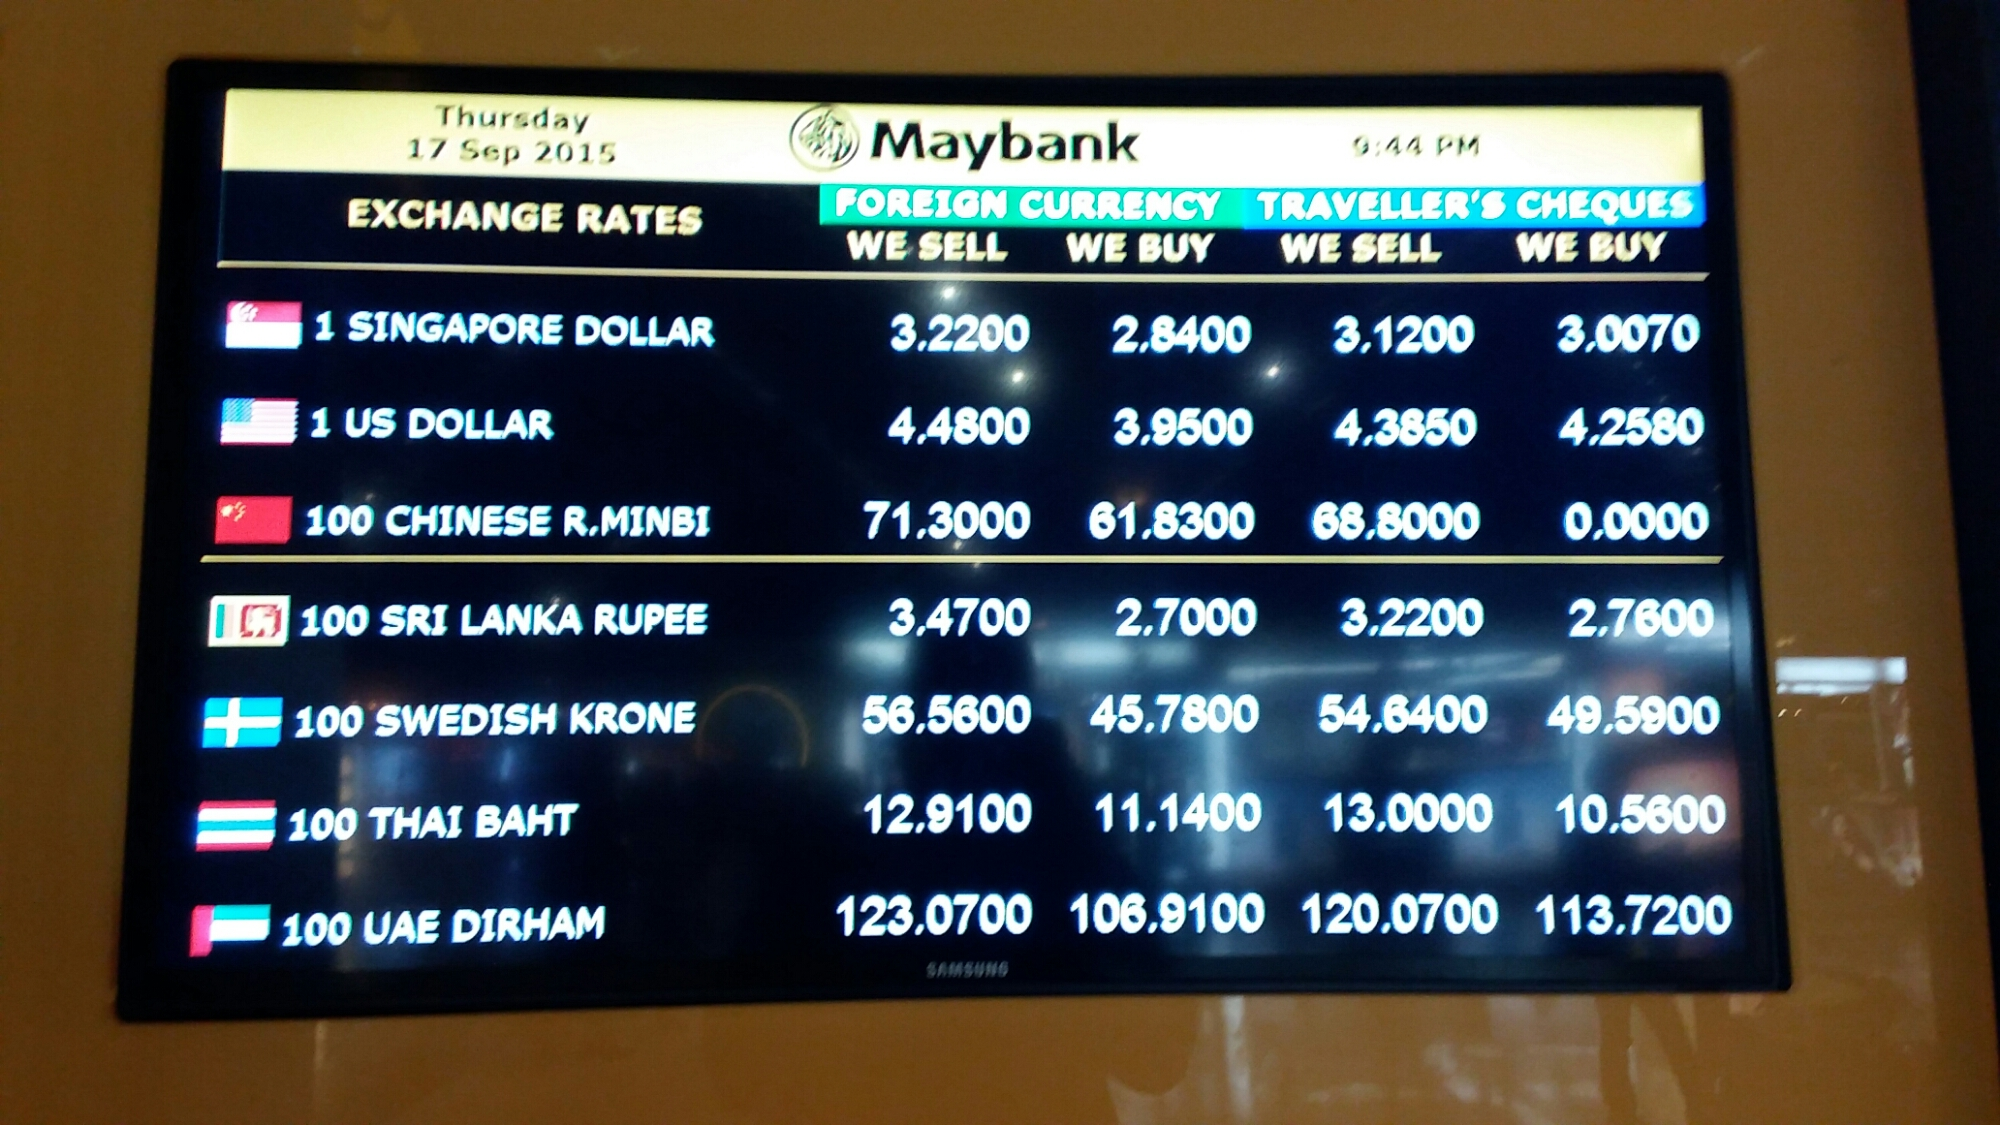 Bnm forex historical rate